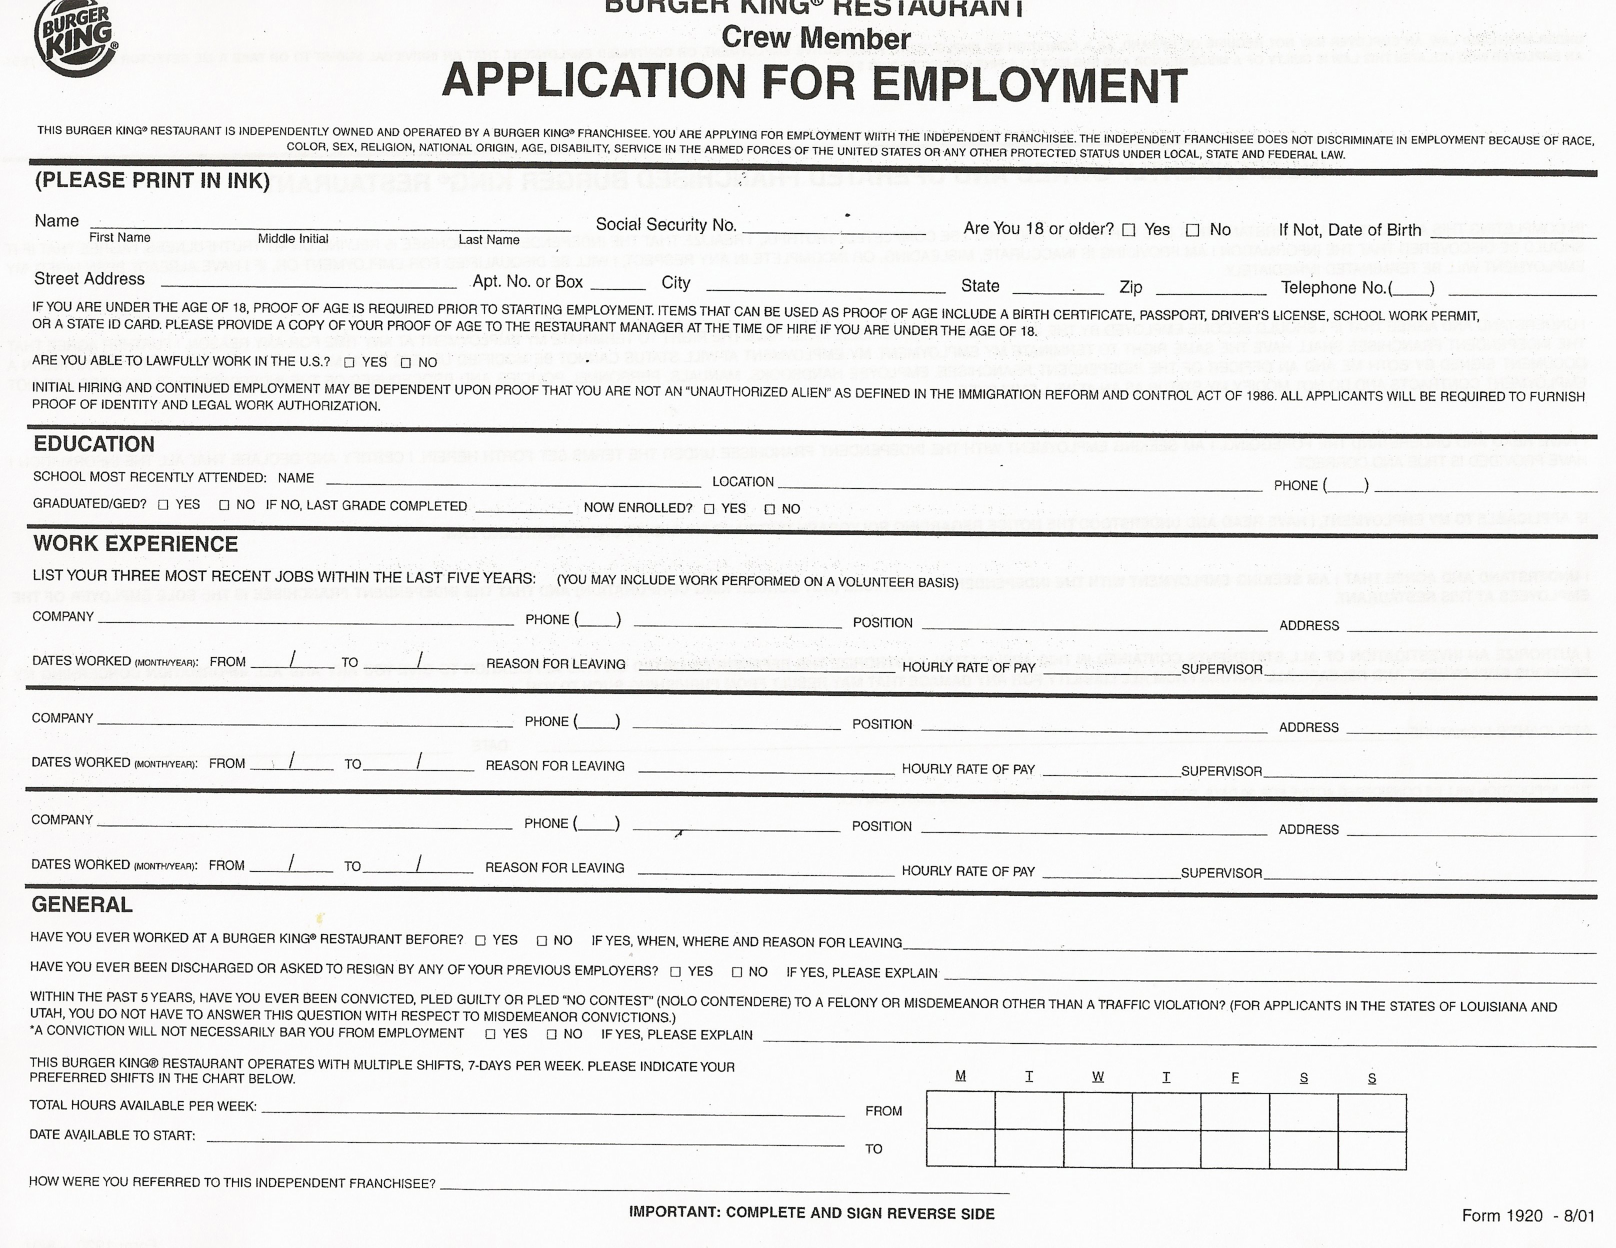 Attractive Job Application Forms To Print | Printable Job Application Forms Applicants